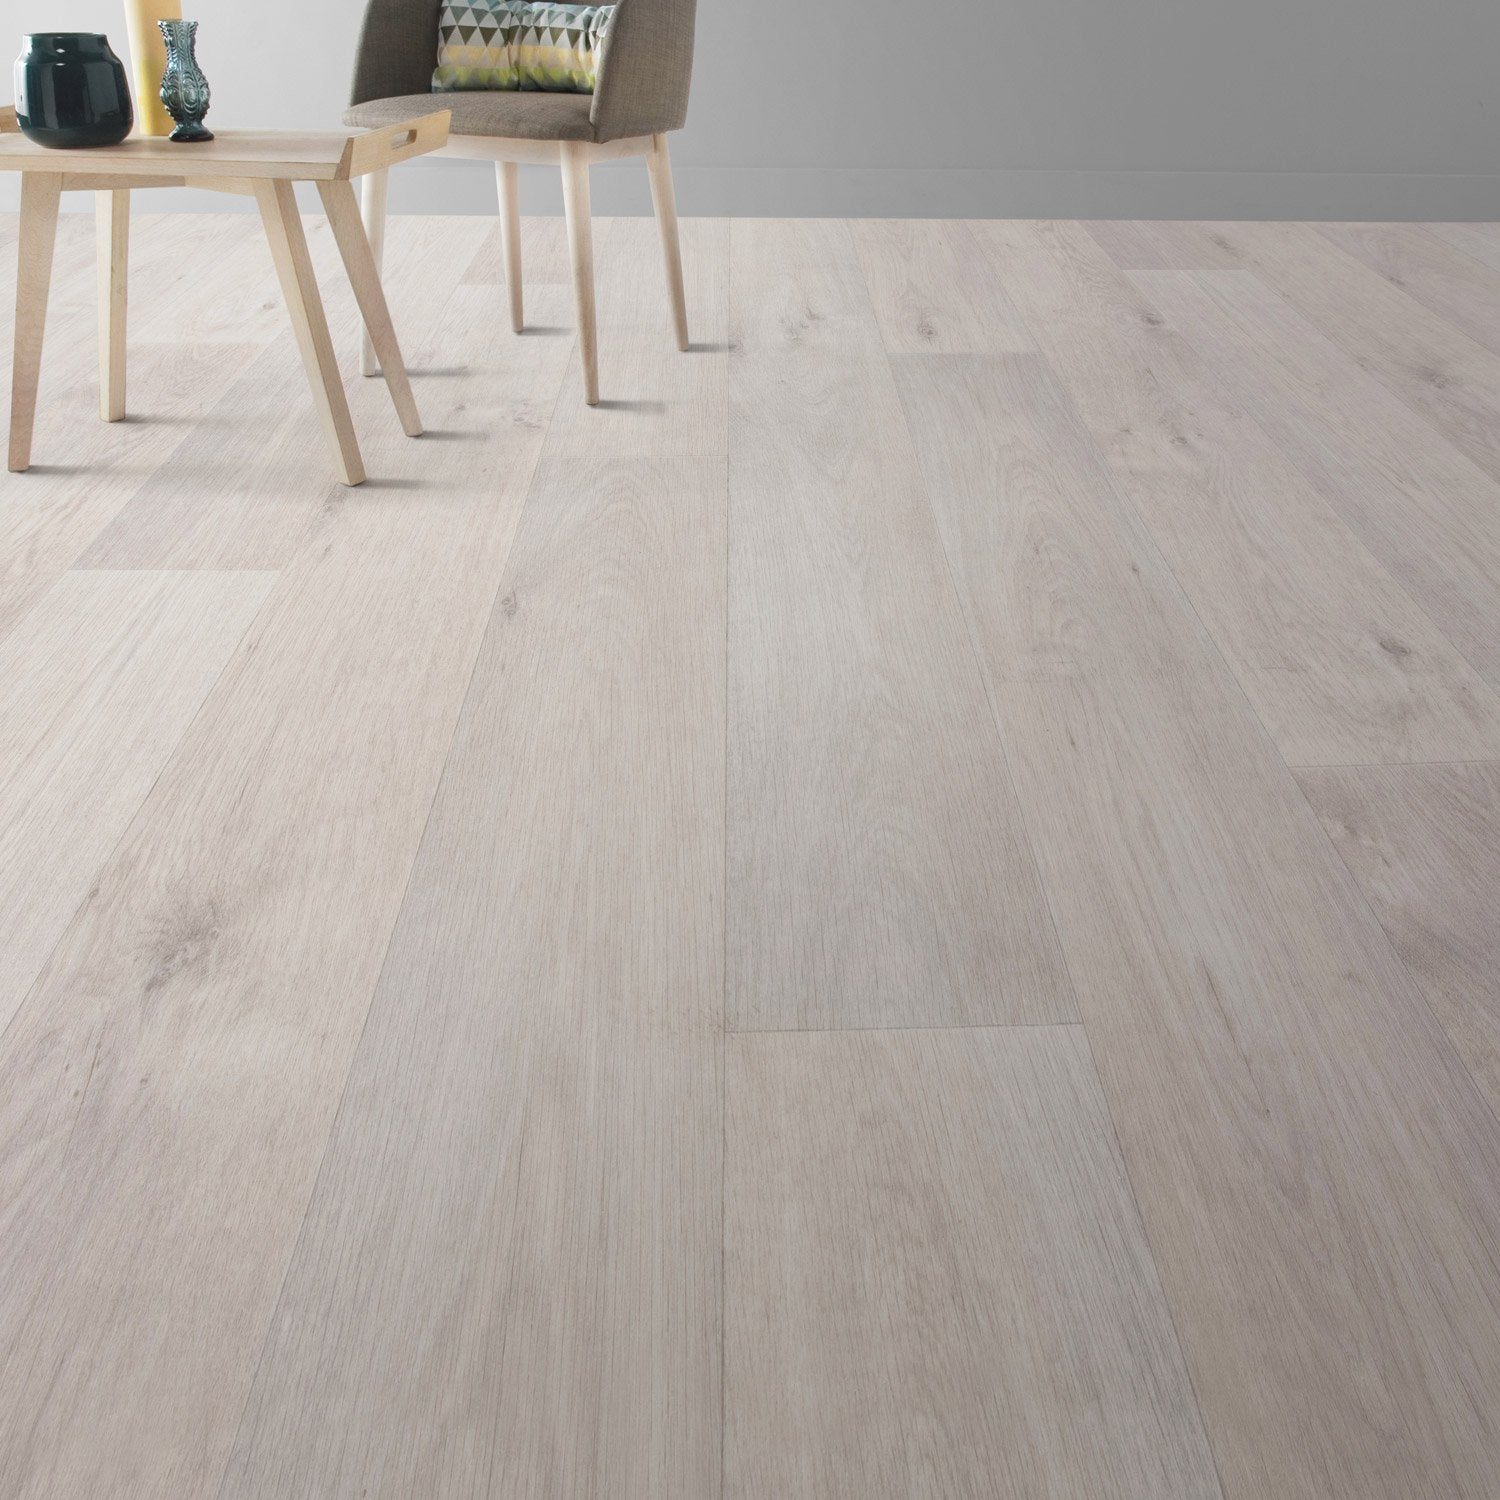 Sol pvc blanc timber gerflor texline hqr l 4 m leroy merlin - Revetement de sol leroy merlin ...